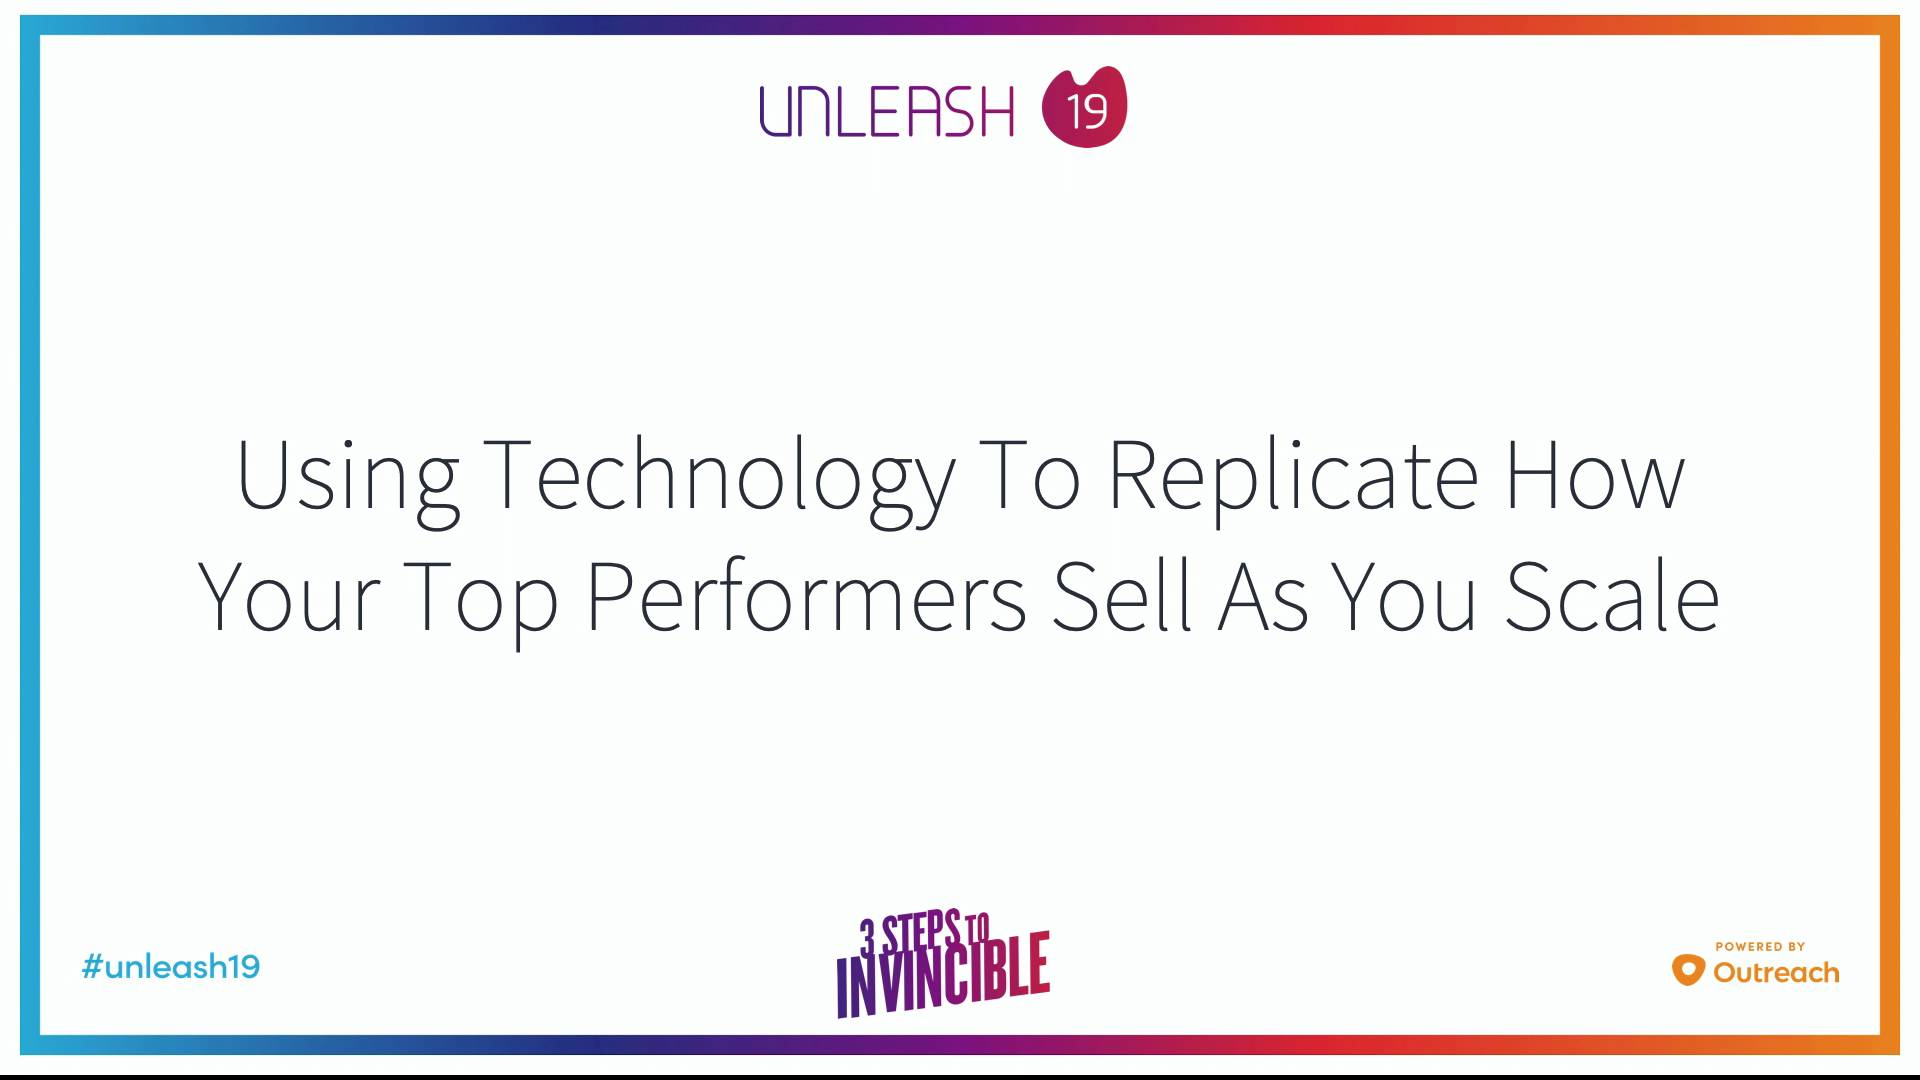 Using Technology to Replicate How Your Top Performers Sell as you Scale - Scott Barker, Roy Raanani, Jake Reni, Nicollette Mullenix